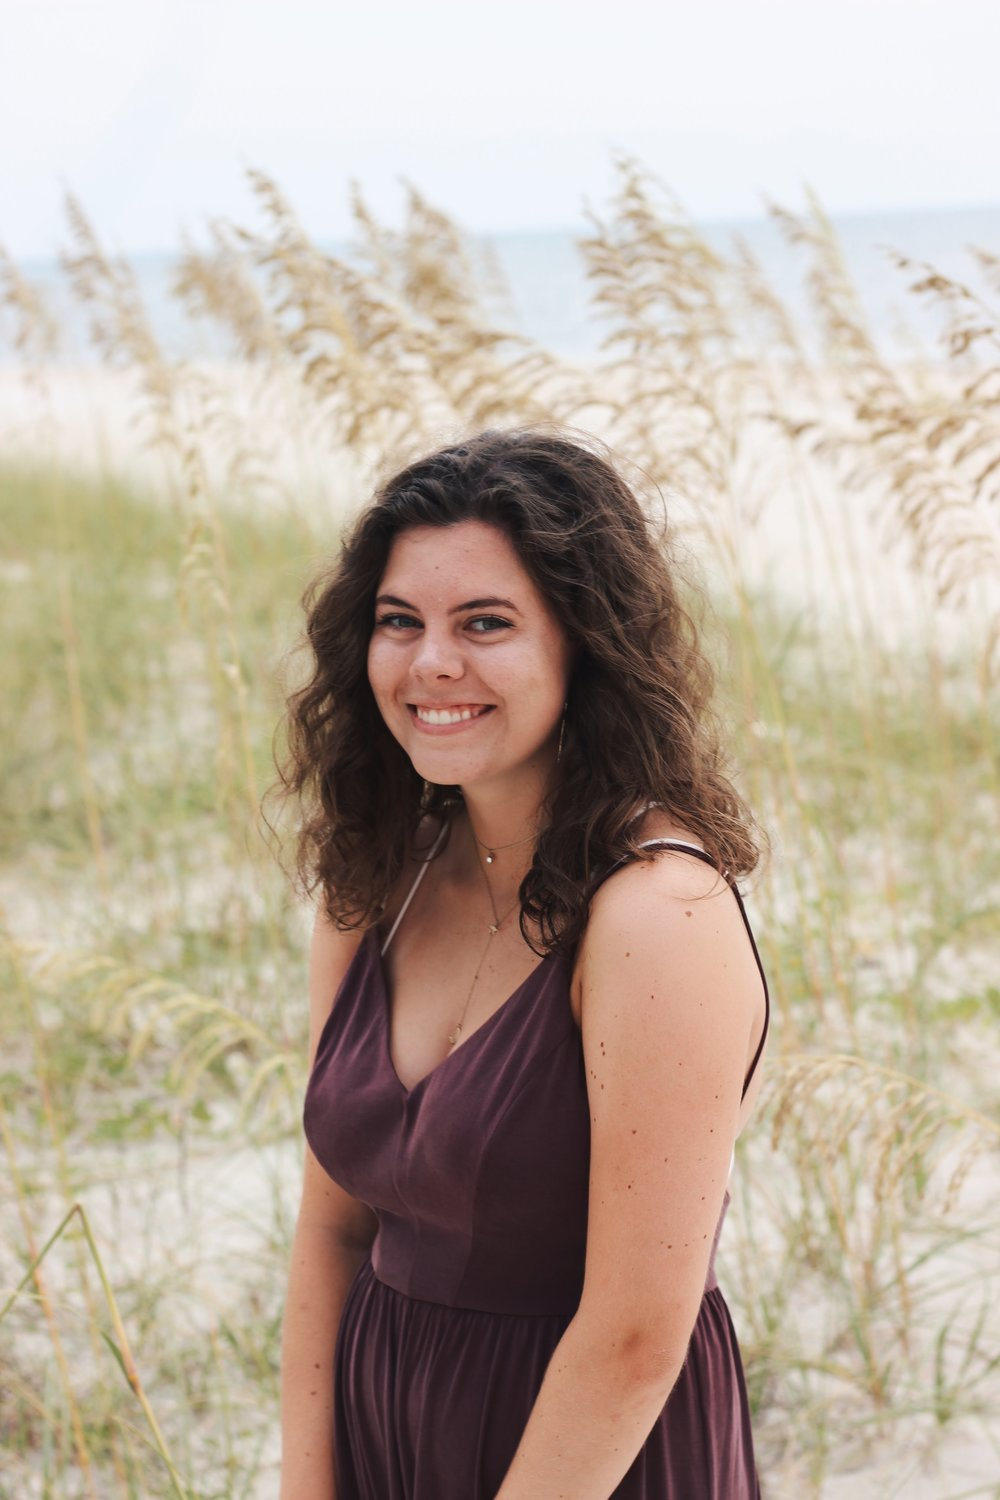 GRACE   Grace McKennon is a senior at Hume-Fogg Academic Magnet High School and is the Chair of the Climate and Energy Committee for the HUme-Fogg Livable Schools Council. Grace has been interested in environmental science since the seventh grade and plans on it being her major in college at Northeastern University. She is taking AP Environmental Science this year to learn more about the subject and foster her passion for the environment. Grace got involved with Livable Schools as soon as she heard about it, and showed interest in taking on a leadership position and chose to be the Chair of the Climate and Energy Committee.  As the Chair of the Climate and Energy Committee, Grace has been working to reduce Hume-Fogg's overall energy usage and try to steer the school towards alternative forms of clean energy. Her goals include educating the student body about energy, switching to LEDs, getting rid of teachers' mini-fridges, and keeping energy costs for the school at minimum. Aside from her involvement with Livable Schools, Grace enjoys art, swimming, and nature. She frequently volunteers at the First Center for the Visual Arts, serves as the President of the Sister Cities of Nashville Youth Advisory Board, participates in the Hume-Fogg swim team, and babysits for various local families.